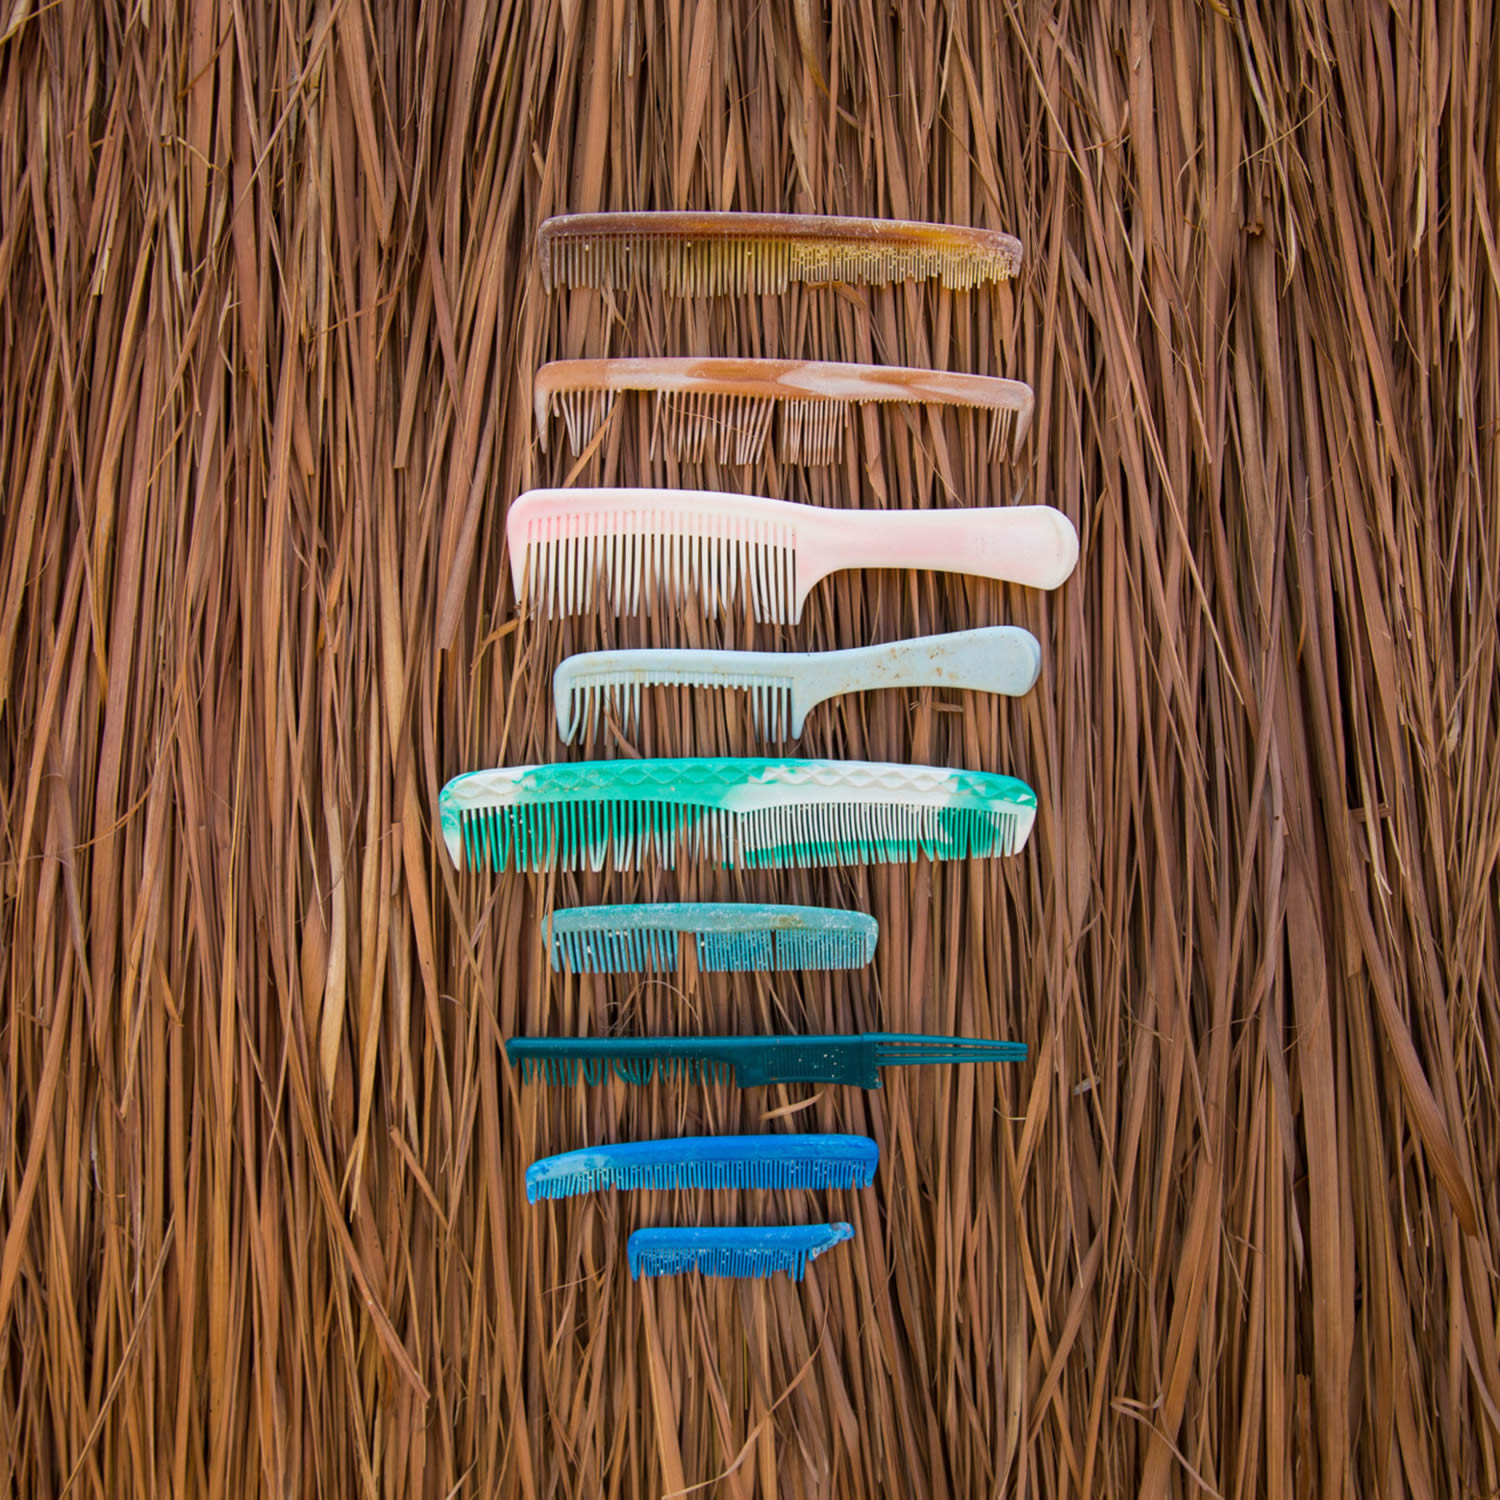 line up of combs